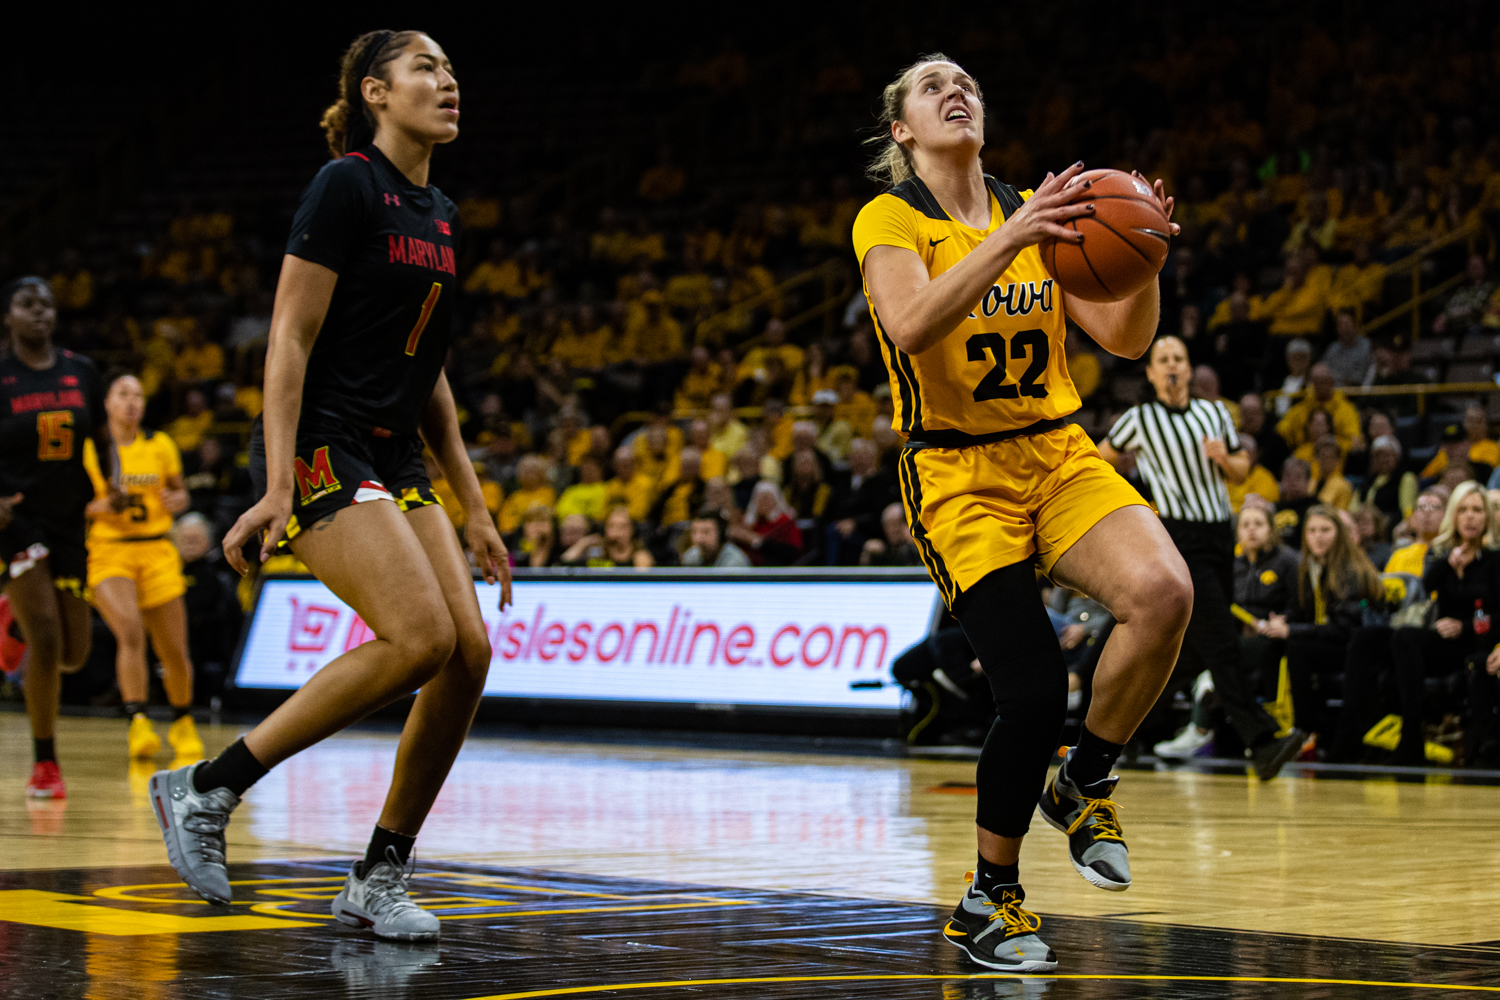 Iowa guard Kathleen Doyle drives to the net during a women's basketball game between Iowa and Maryland at Carver-Hawkeye Arena on Thursday, Jan. 9, 2020. The Hawkeyes defeated the Terrapins, 66-61.